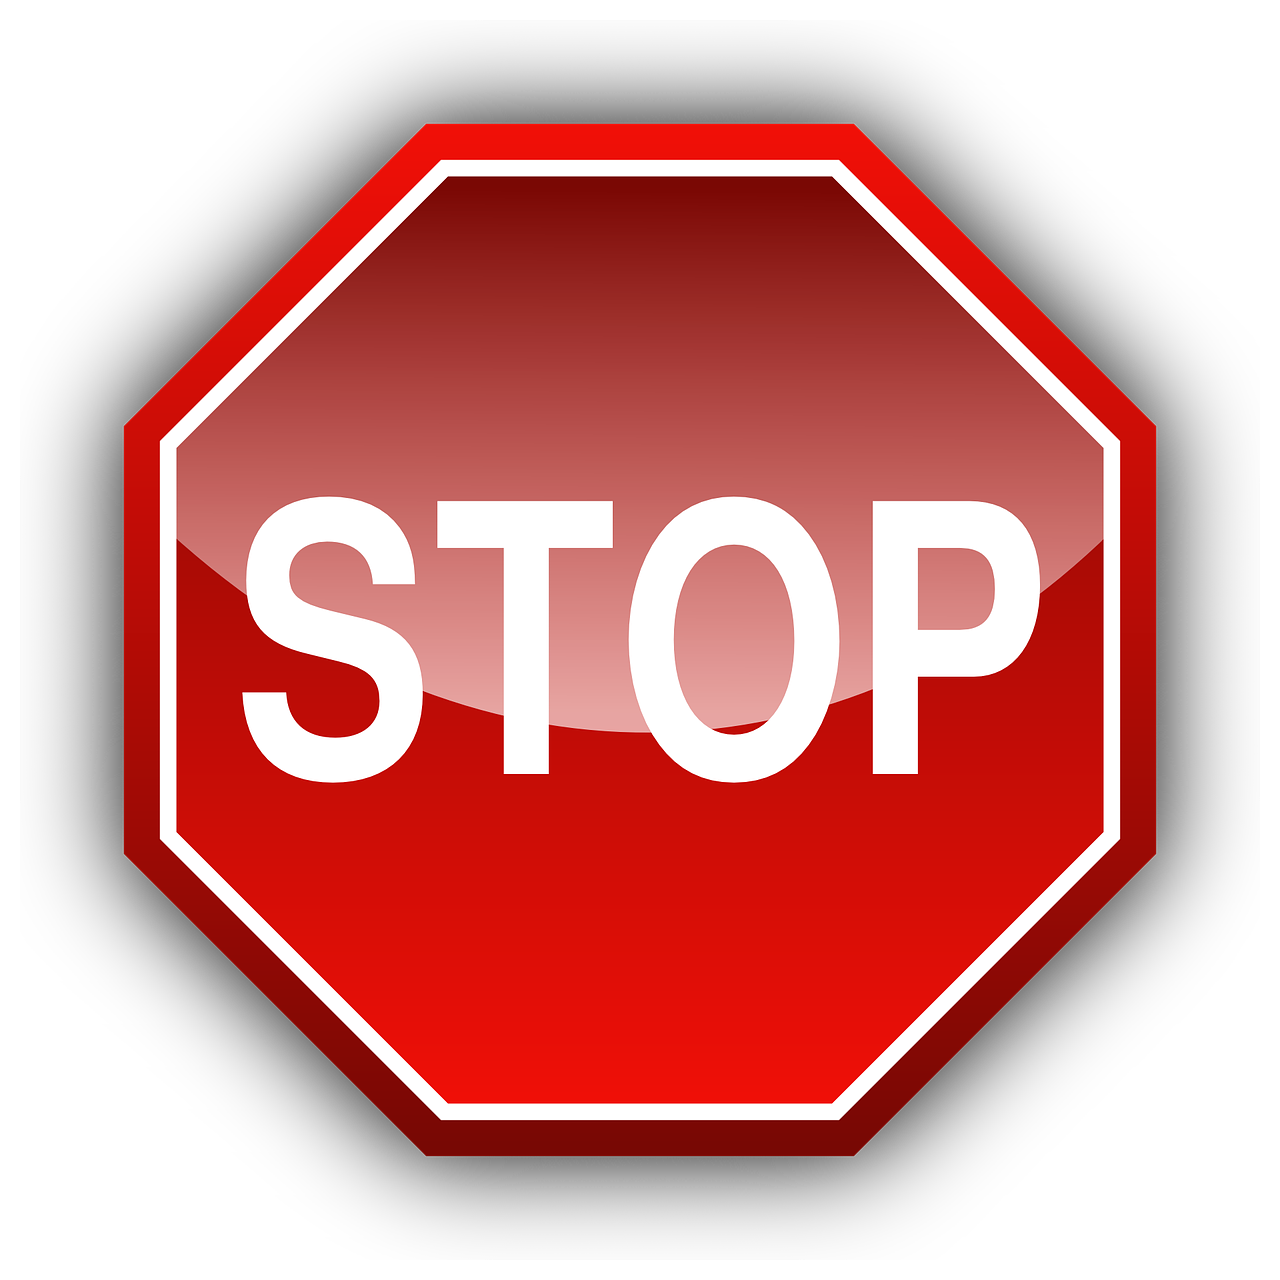 stop sign traffic sign free photo